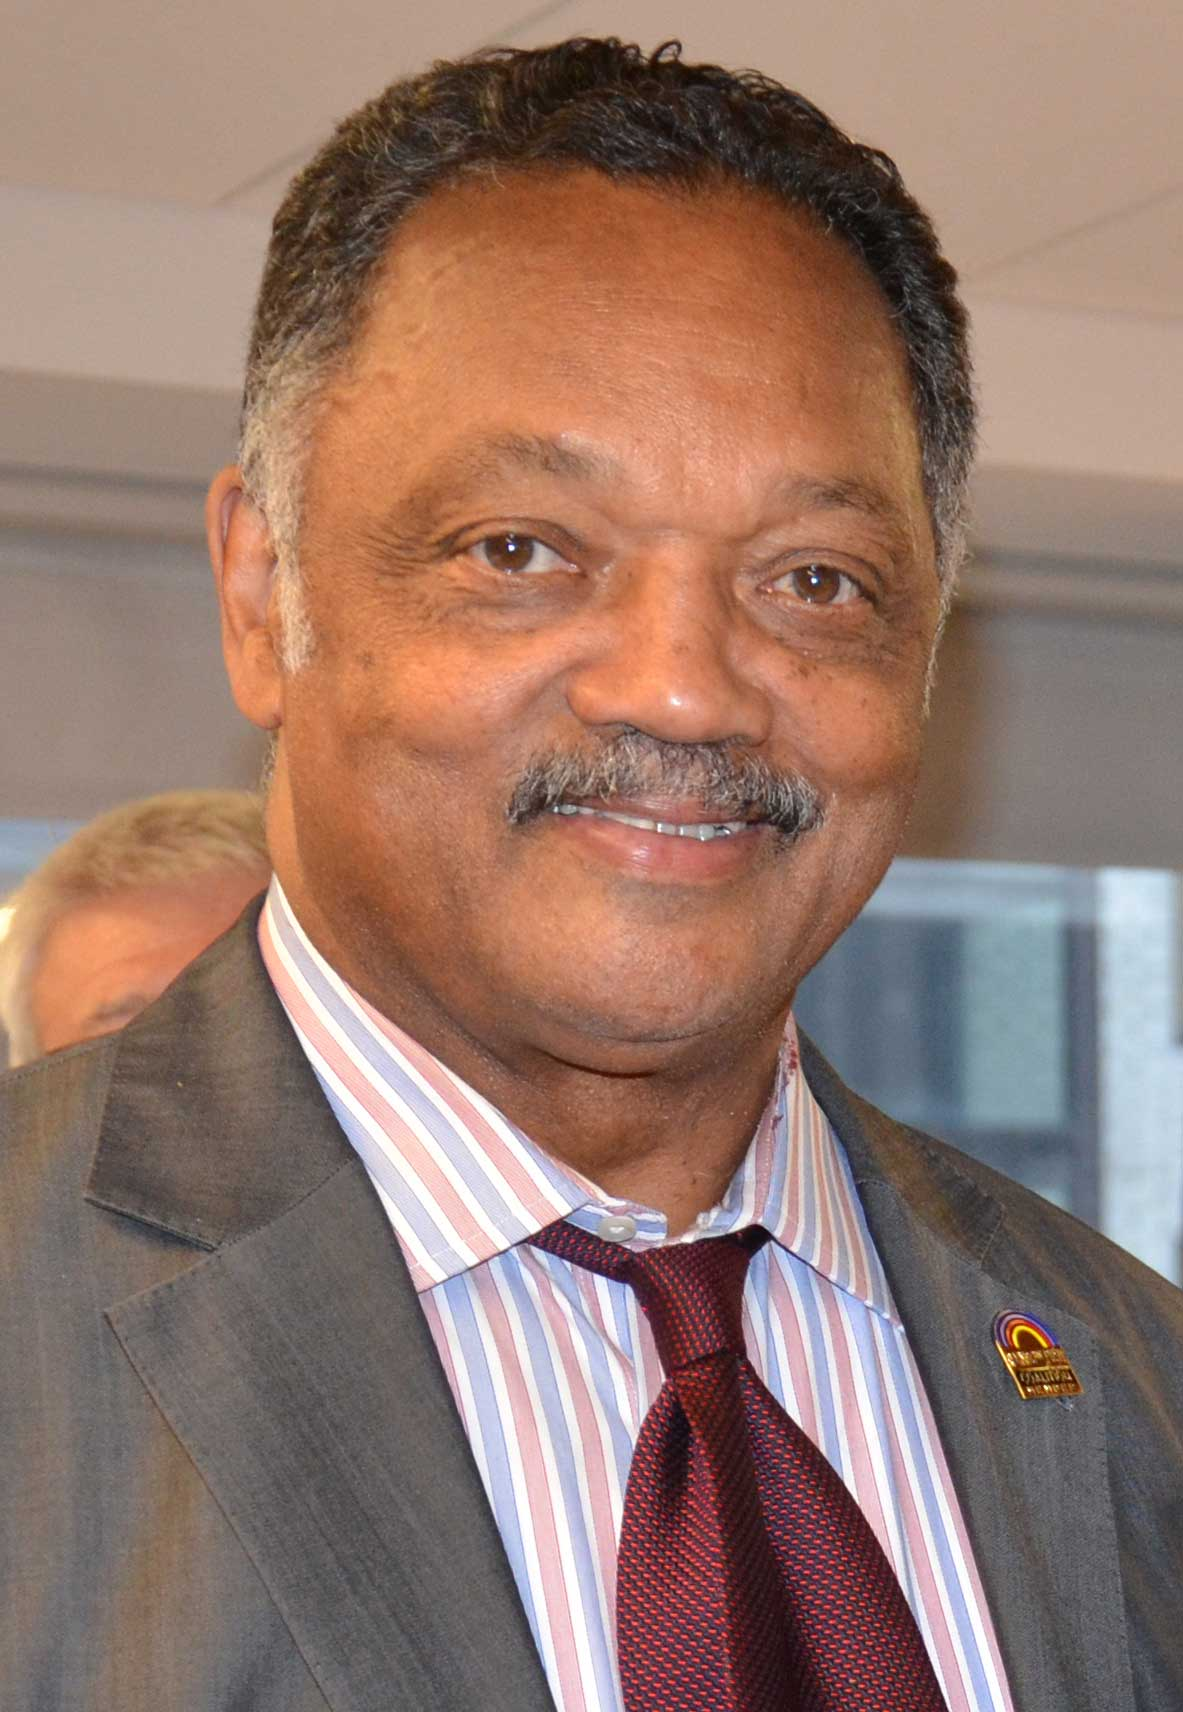 AFGE leaders and staffers meet with the Rev. Jesse Jackson to discuss coalition building.